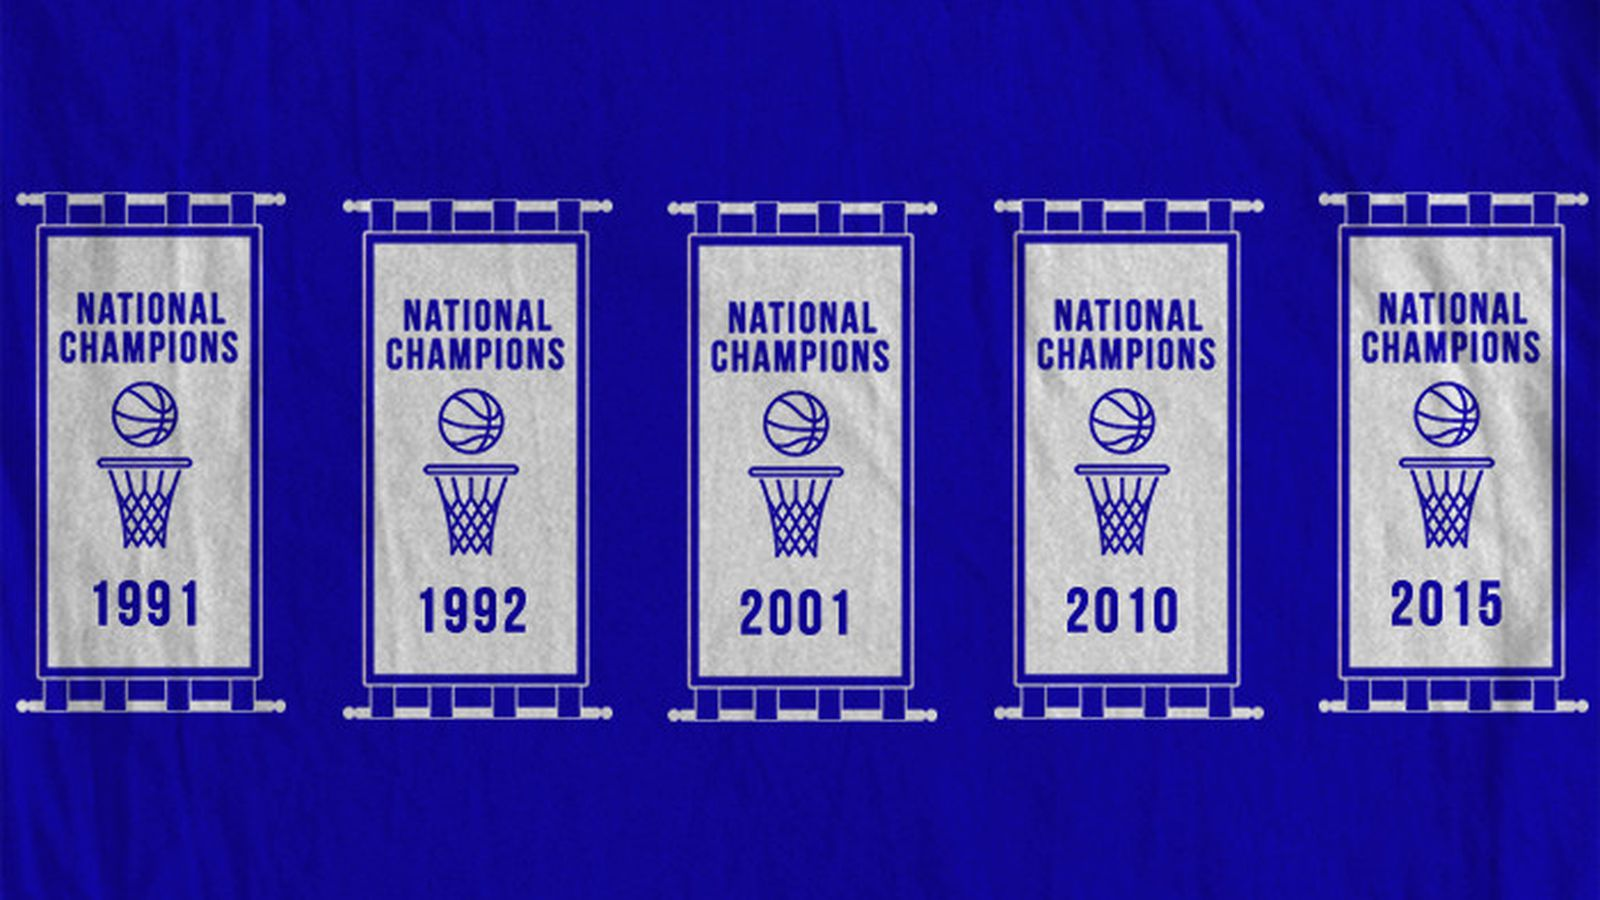 Championship T Shirts Five Banners Duke Basketball Report